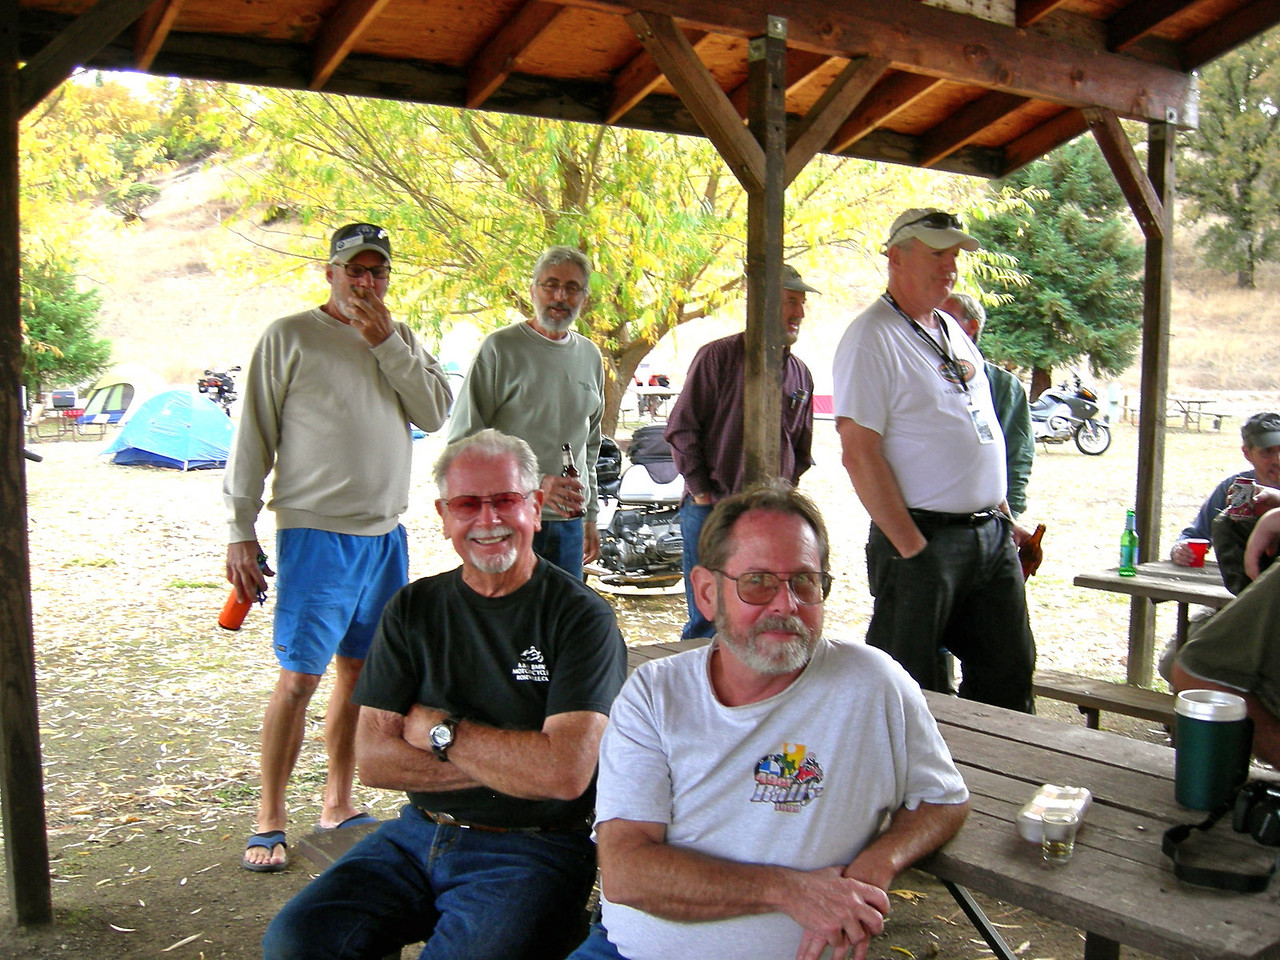 L to R: Terry Hieb and Pat Holland<br /> Standing: Tuco Harris, Bruce Schadel (first meeting), Gene austin, Tom Connely.